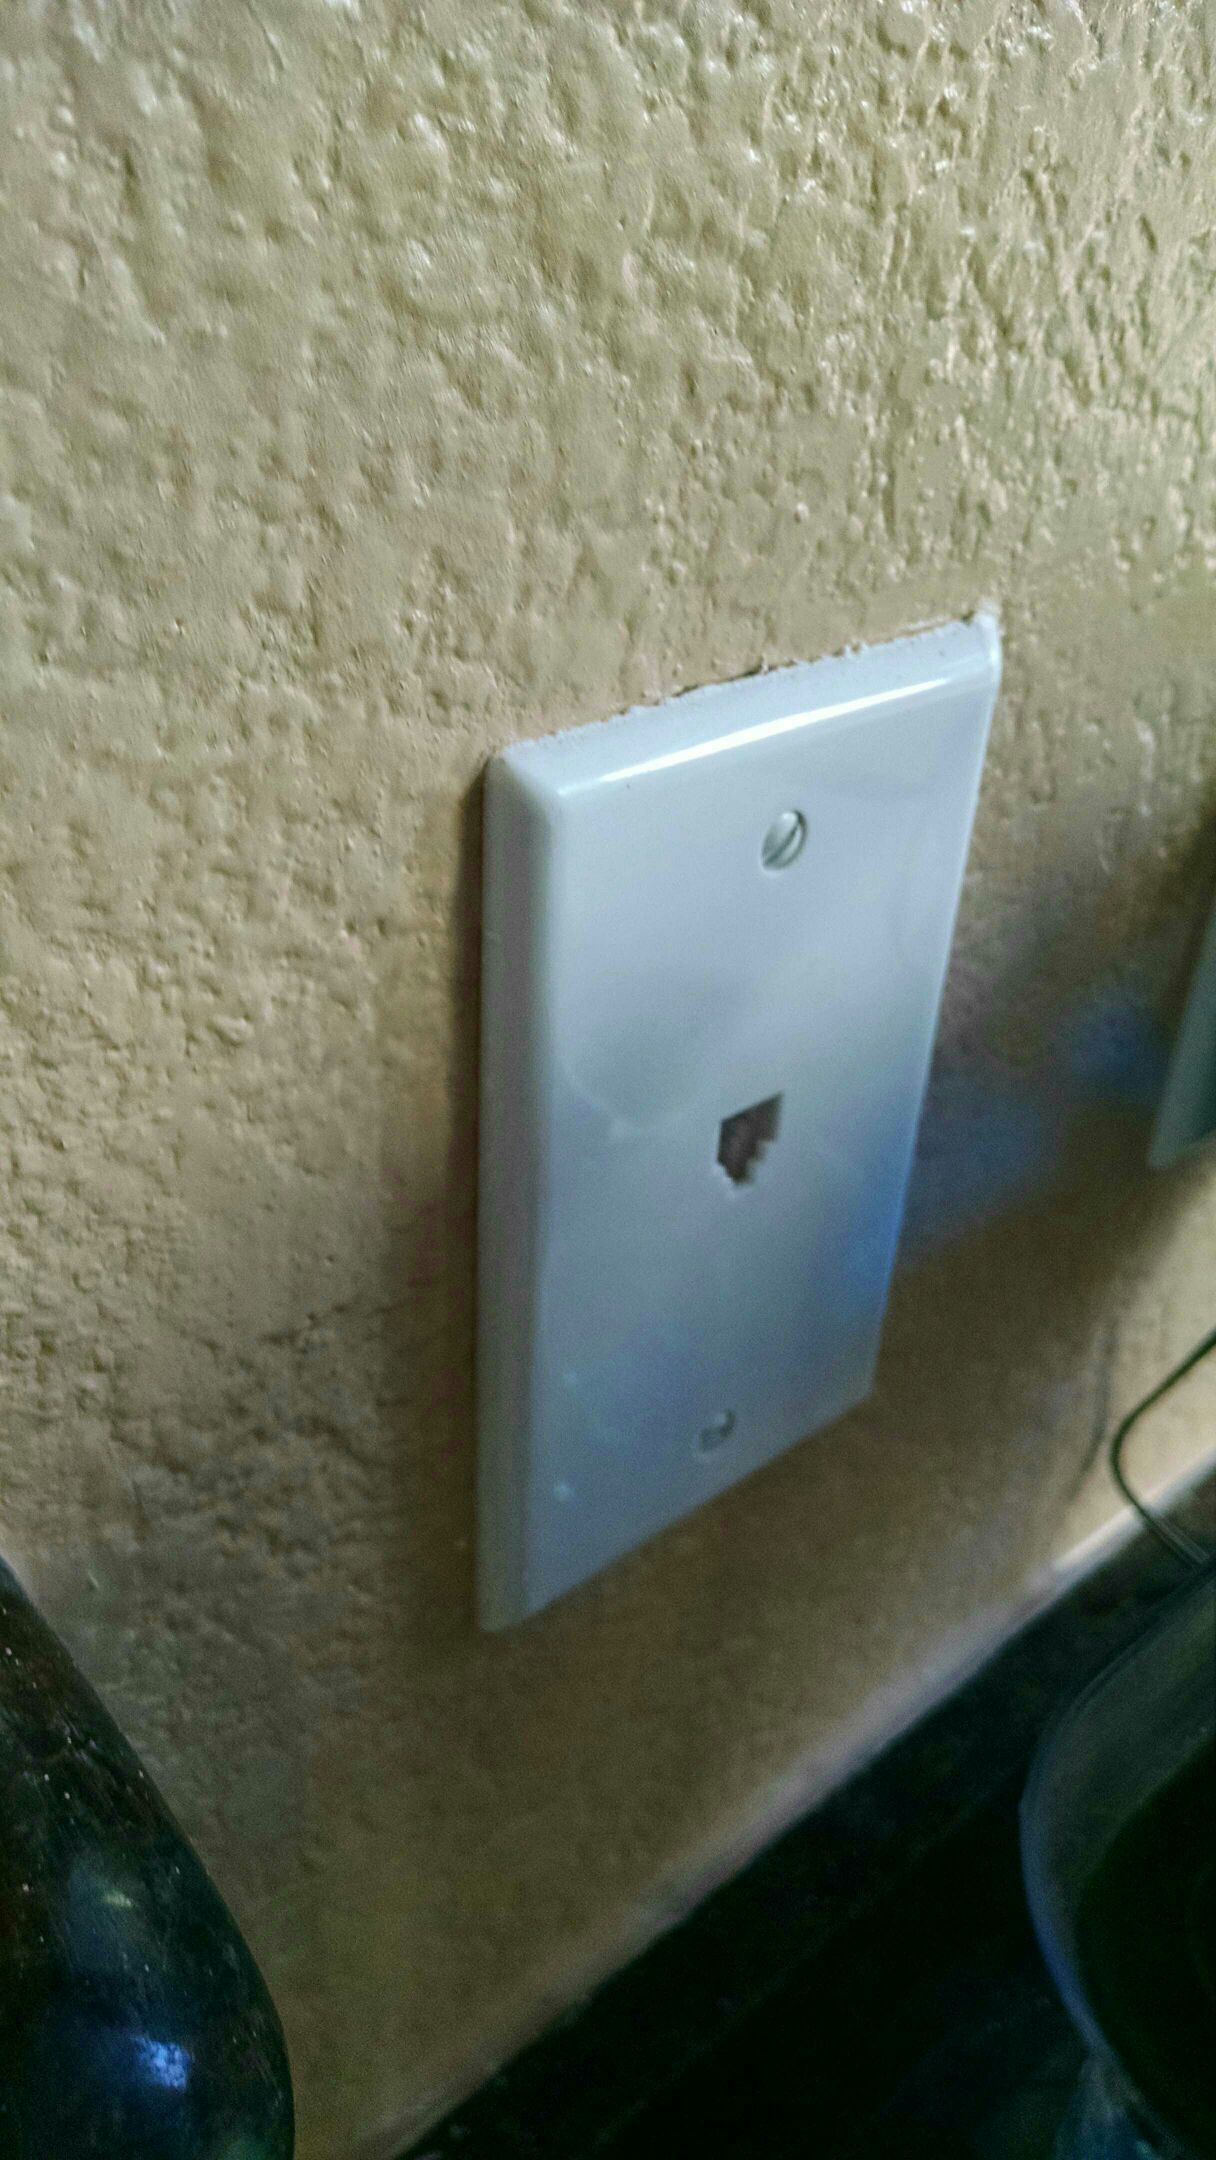 hight resolution of  the wall next to a regular power outlet and convert the phone jack to charge usb my phone jack doesn t get used and i want to make the outlet useful